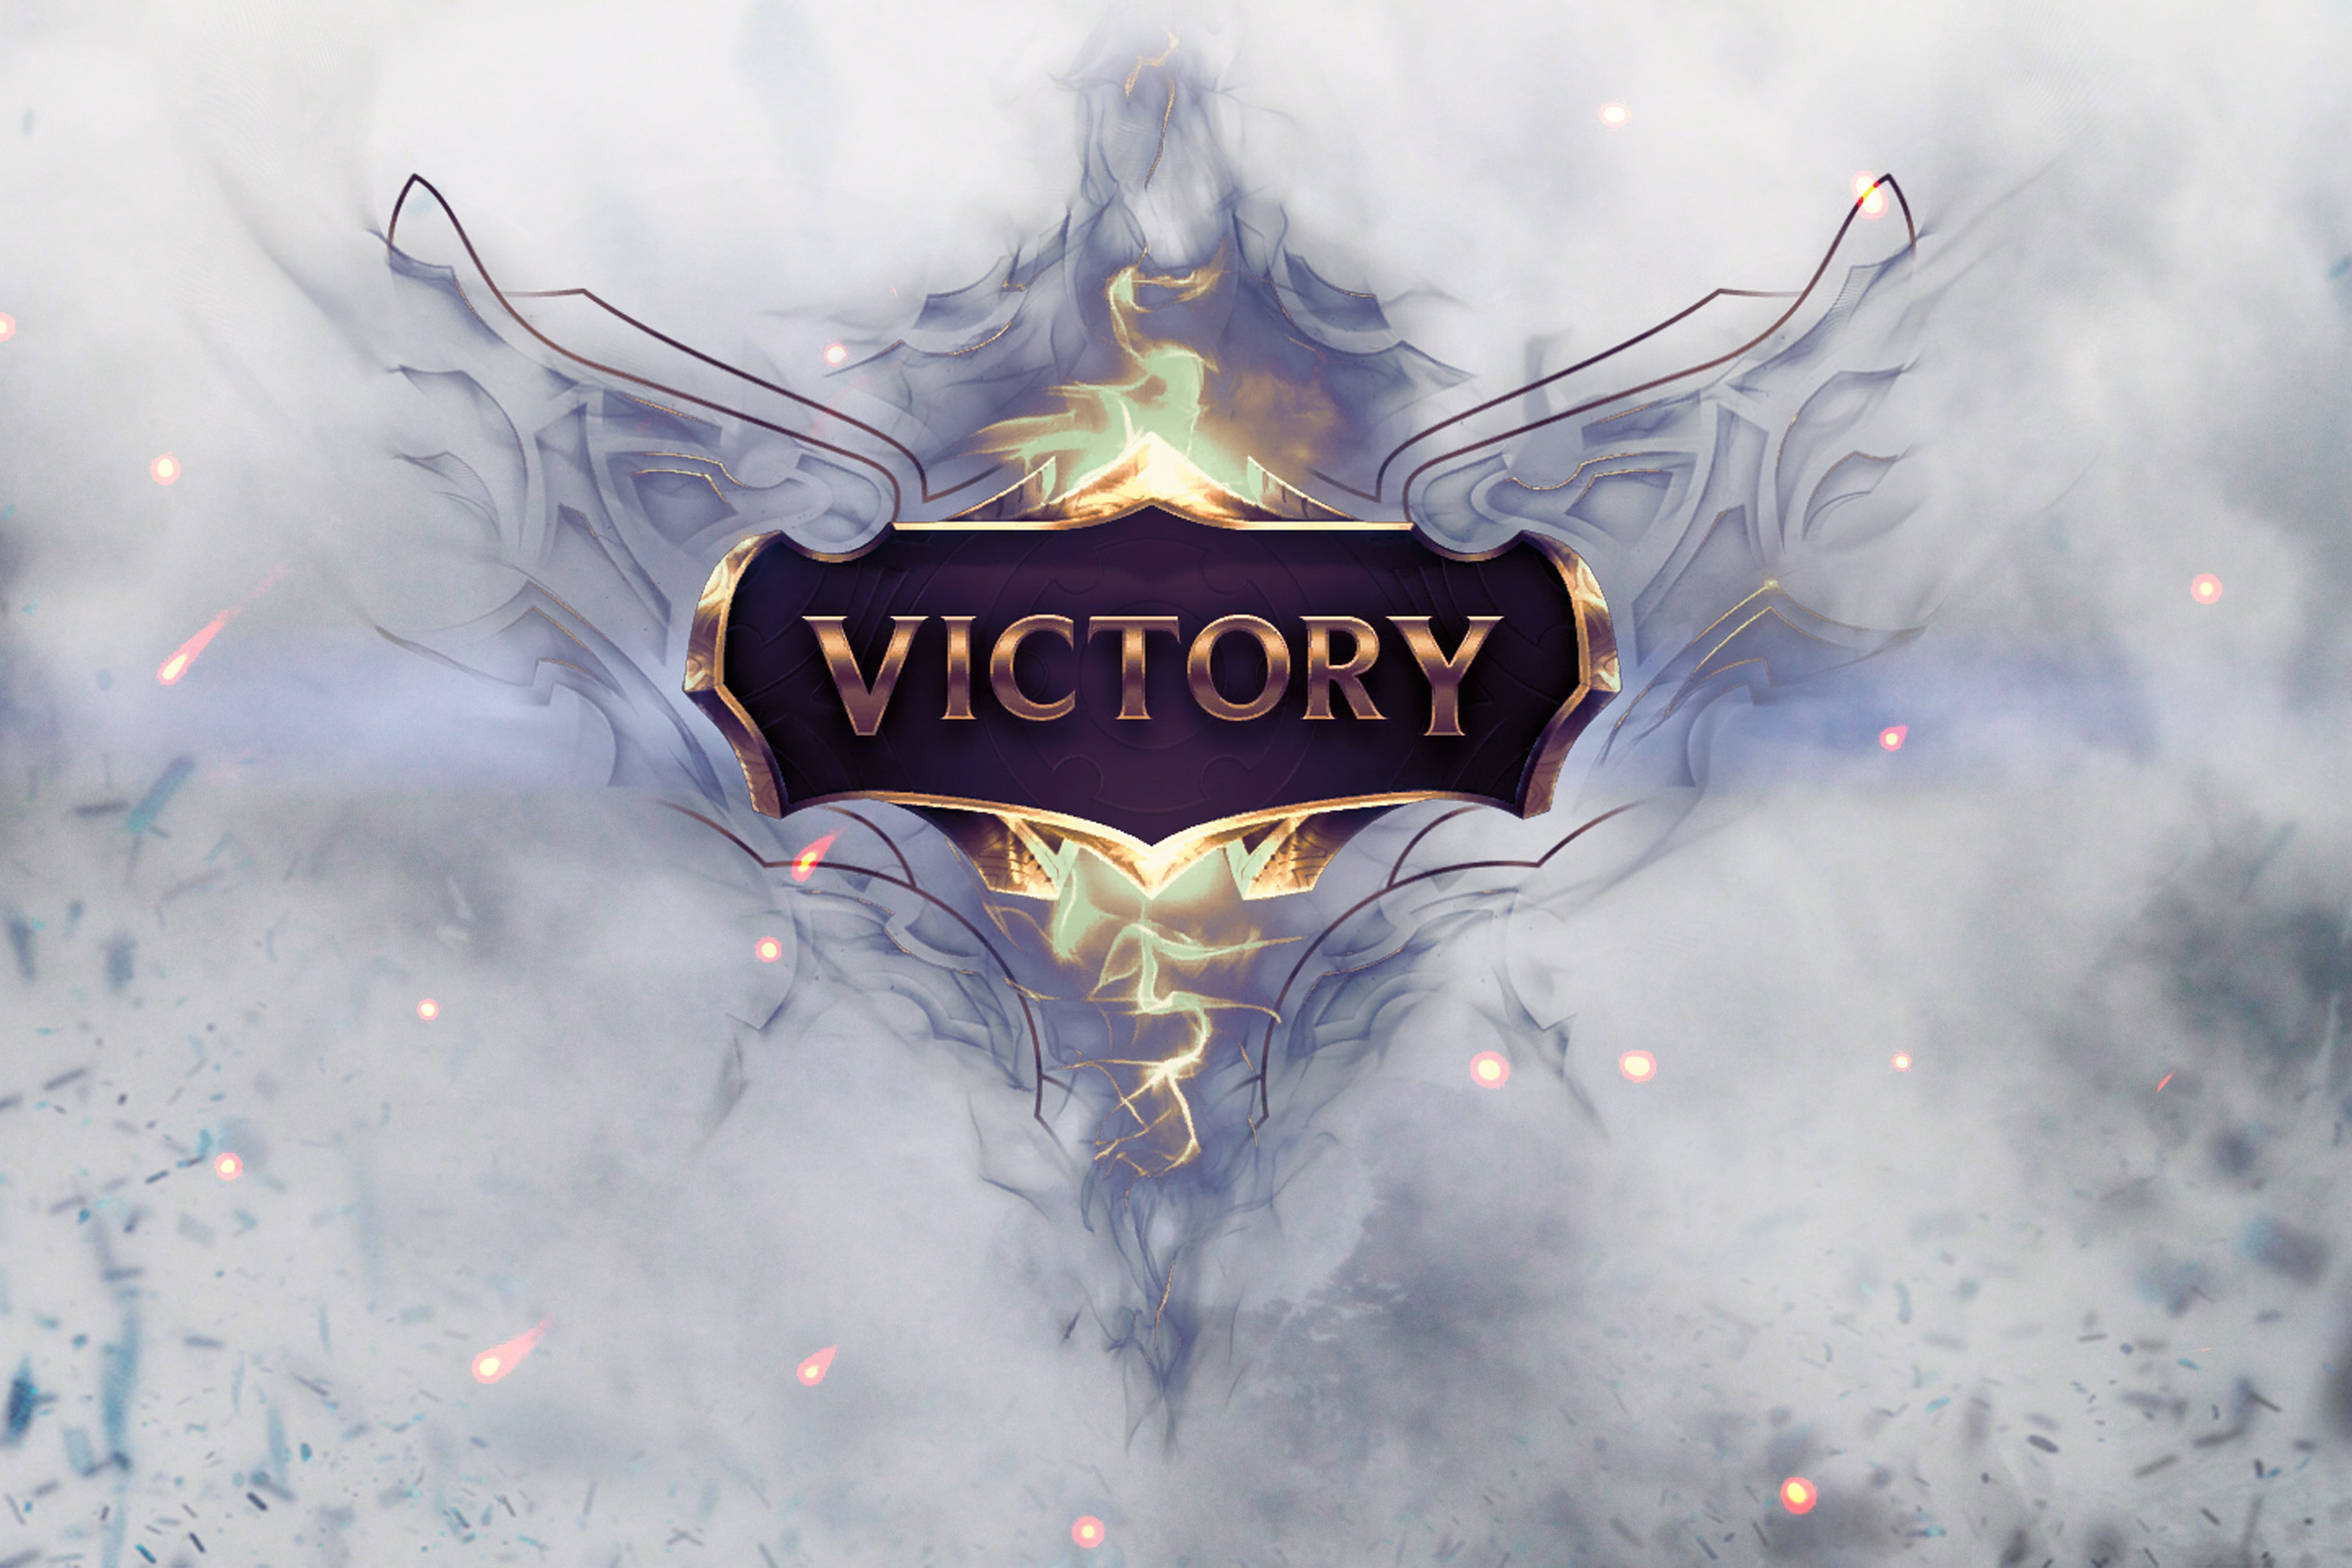 Victory LoLWallpapers 4752x3168